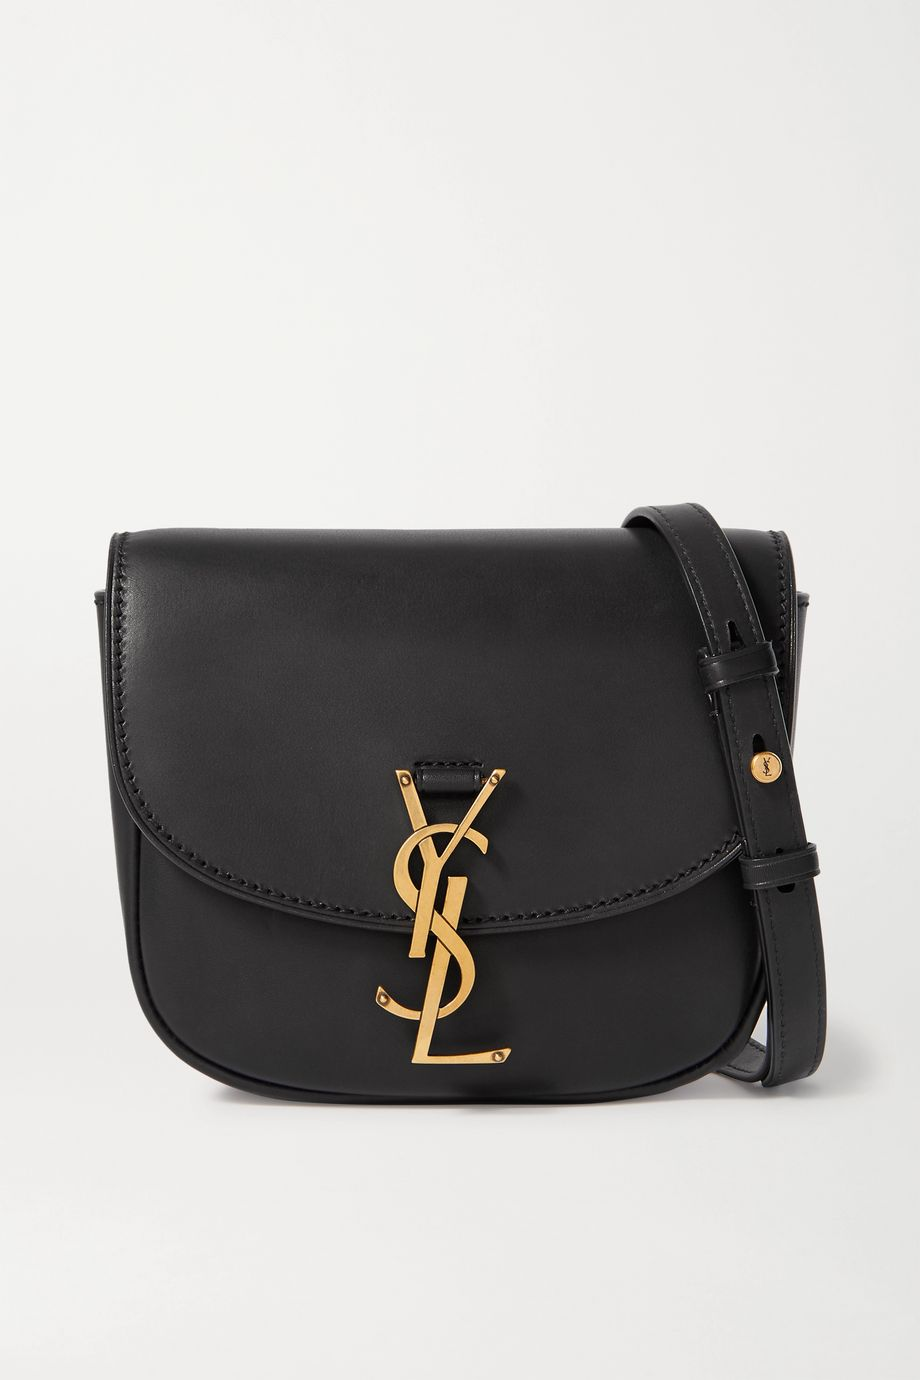 SAINT LAURENT Kaia medium leather shoulder bag